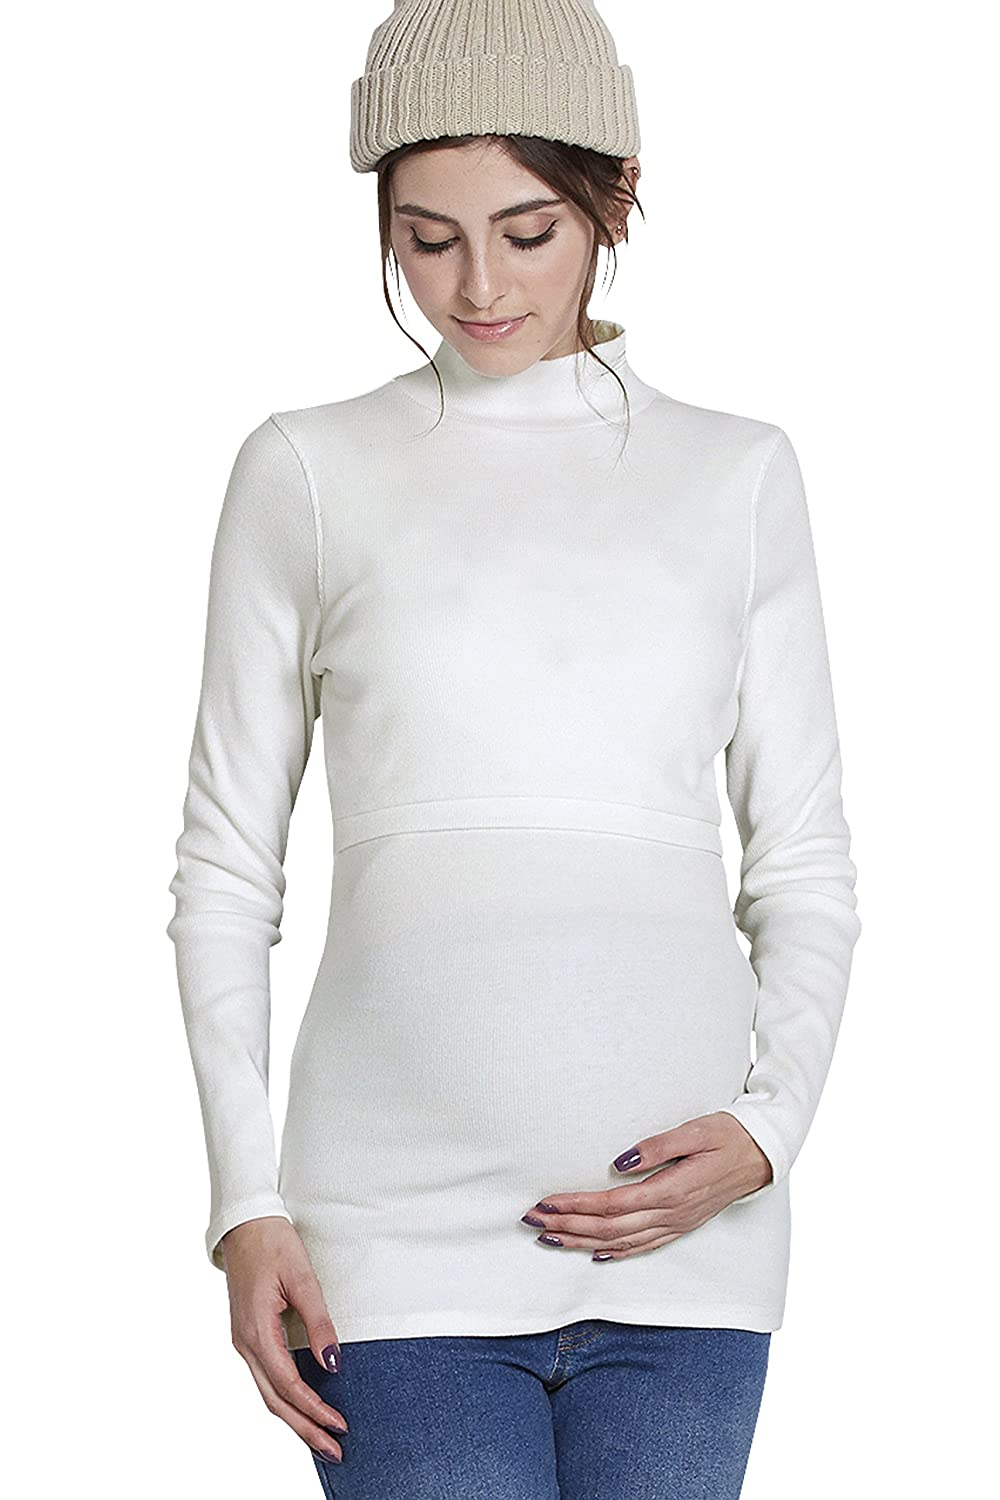 Sweet Mommy Maternity and Nursing Cotton Mock Turtleneck Top Sweet Mommy Co. Ltd. st5143